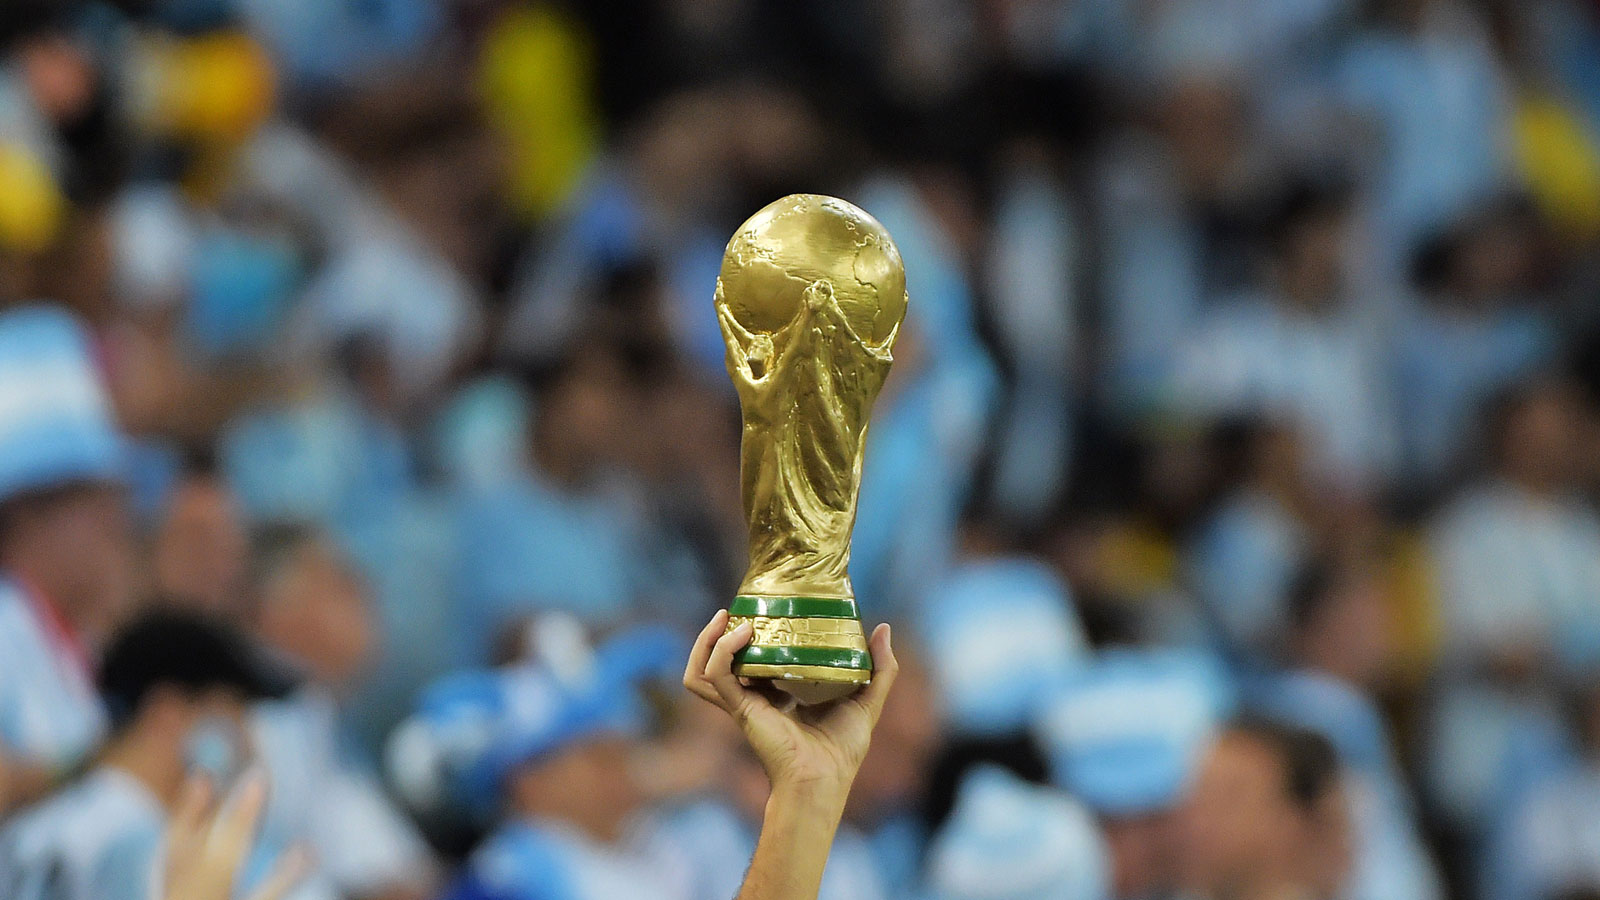 061614-World-Cup-trophy-PI